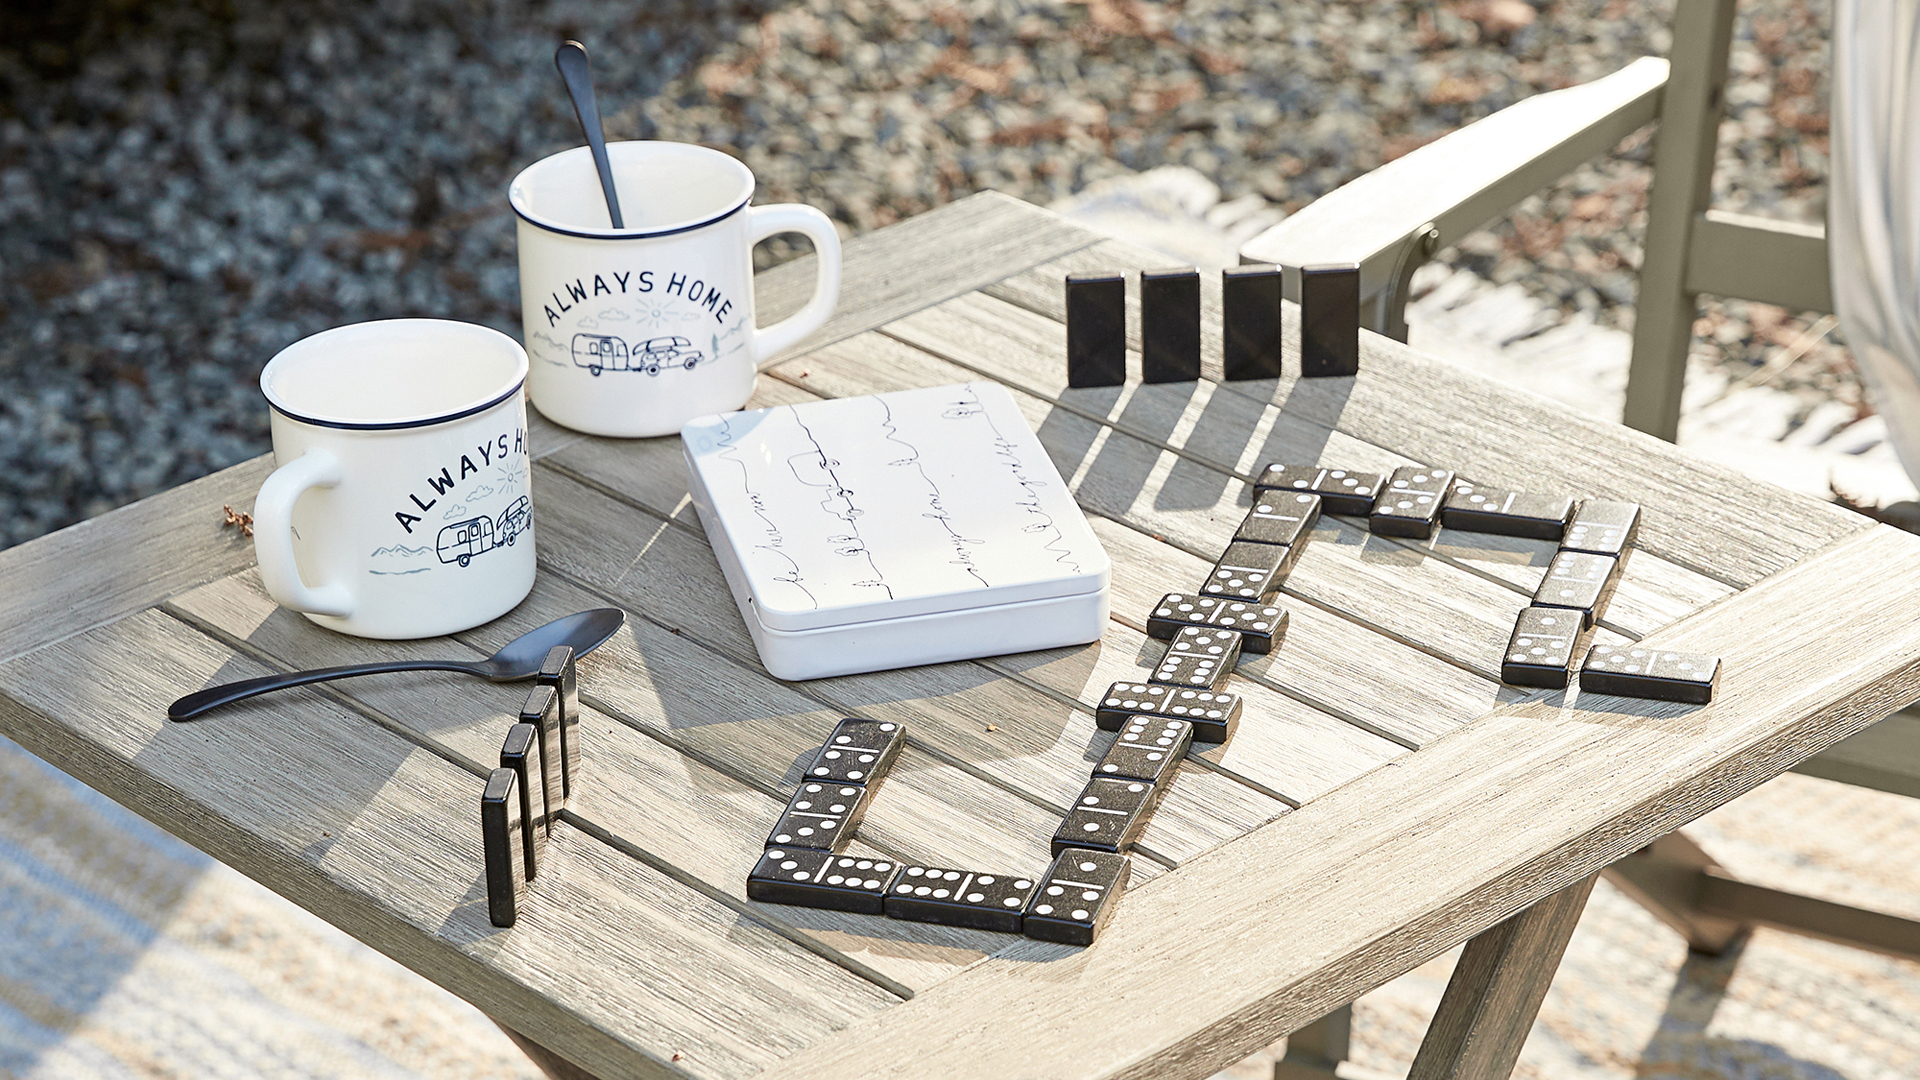 Airstream-and-Pottery-Barn-mugs-and-dominos